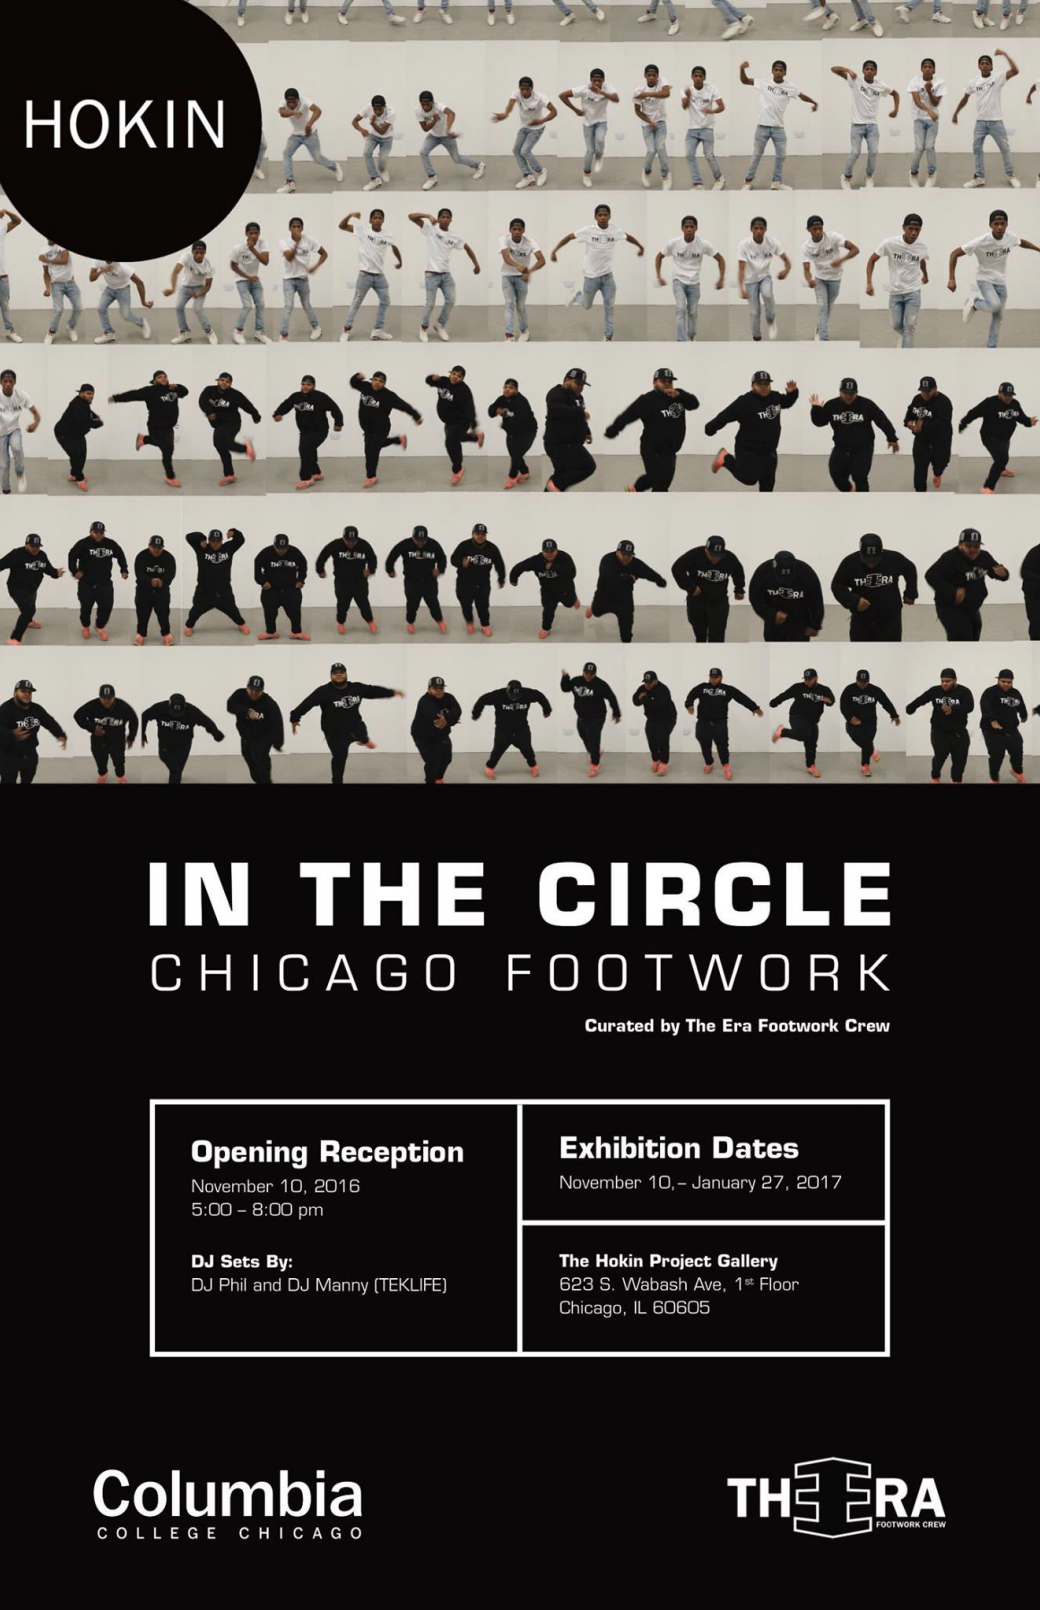 Art exhibition curated by The Era Footwork Crew